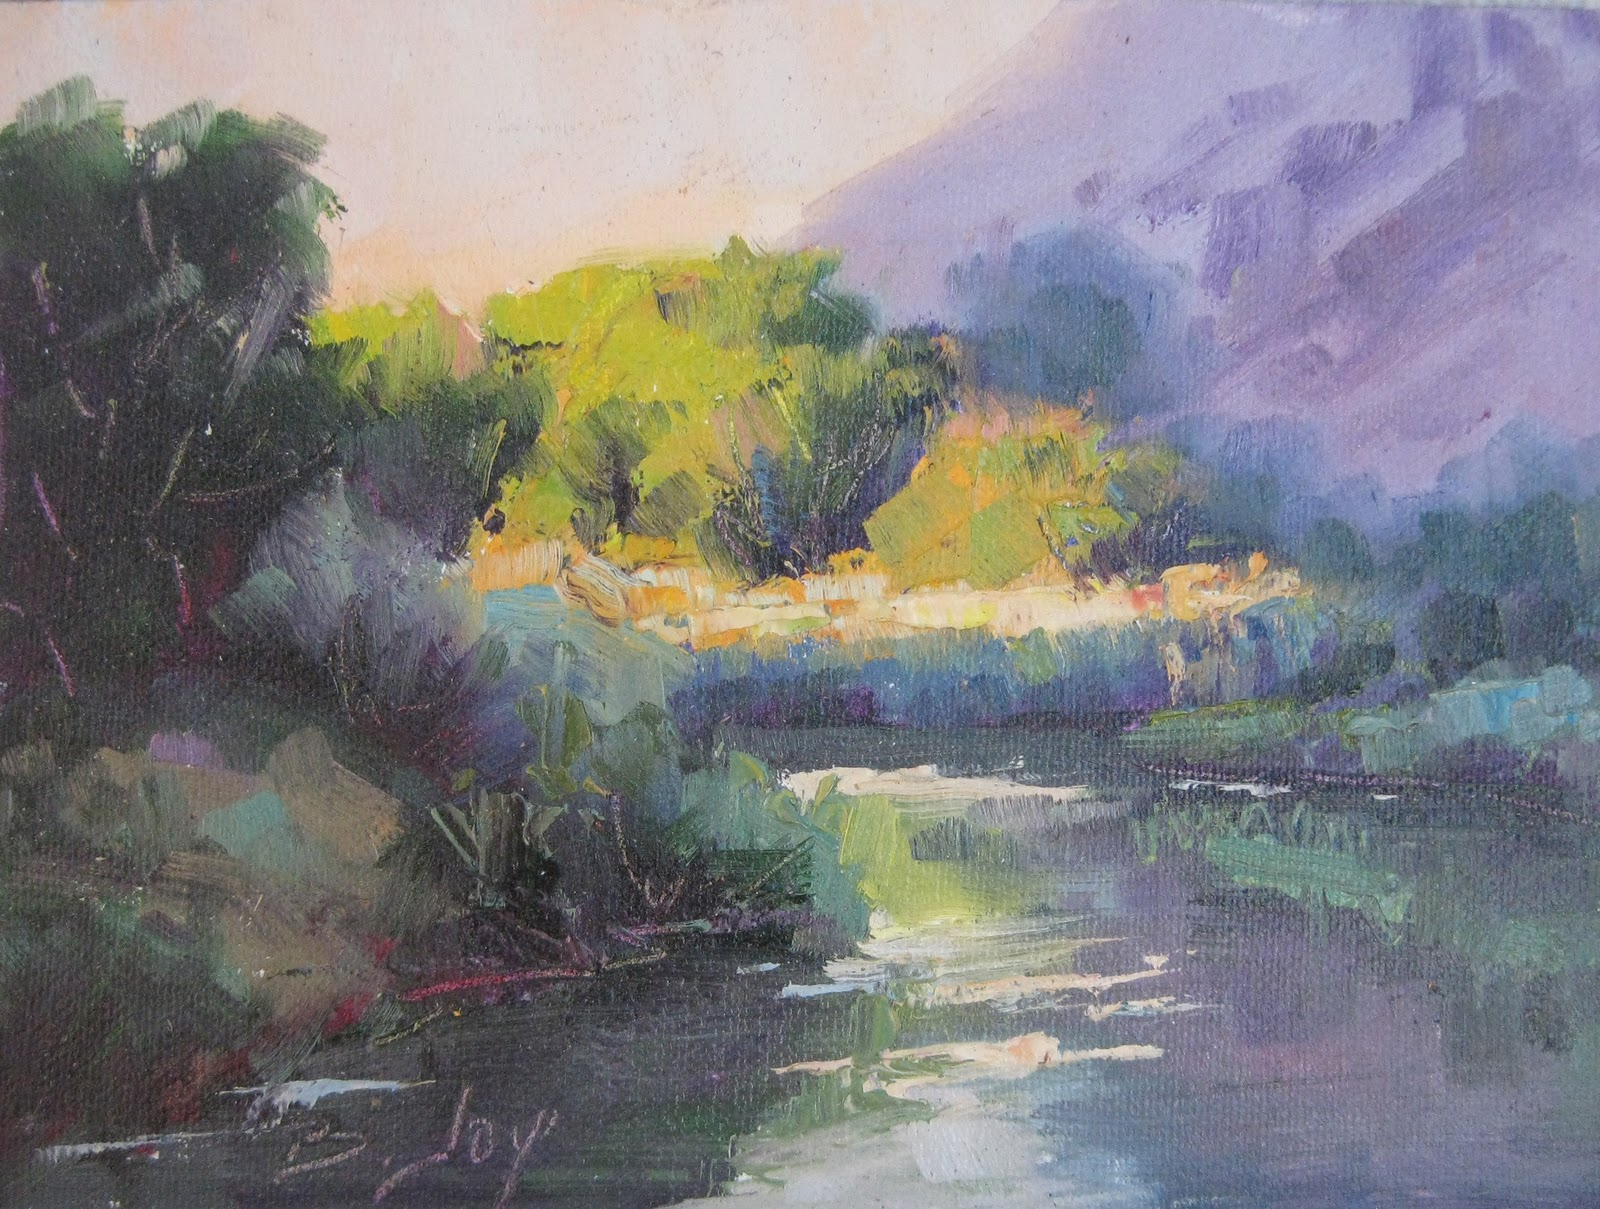 Palette Knife Painters BECKY JOY Palette Knife River And Trees